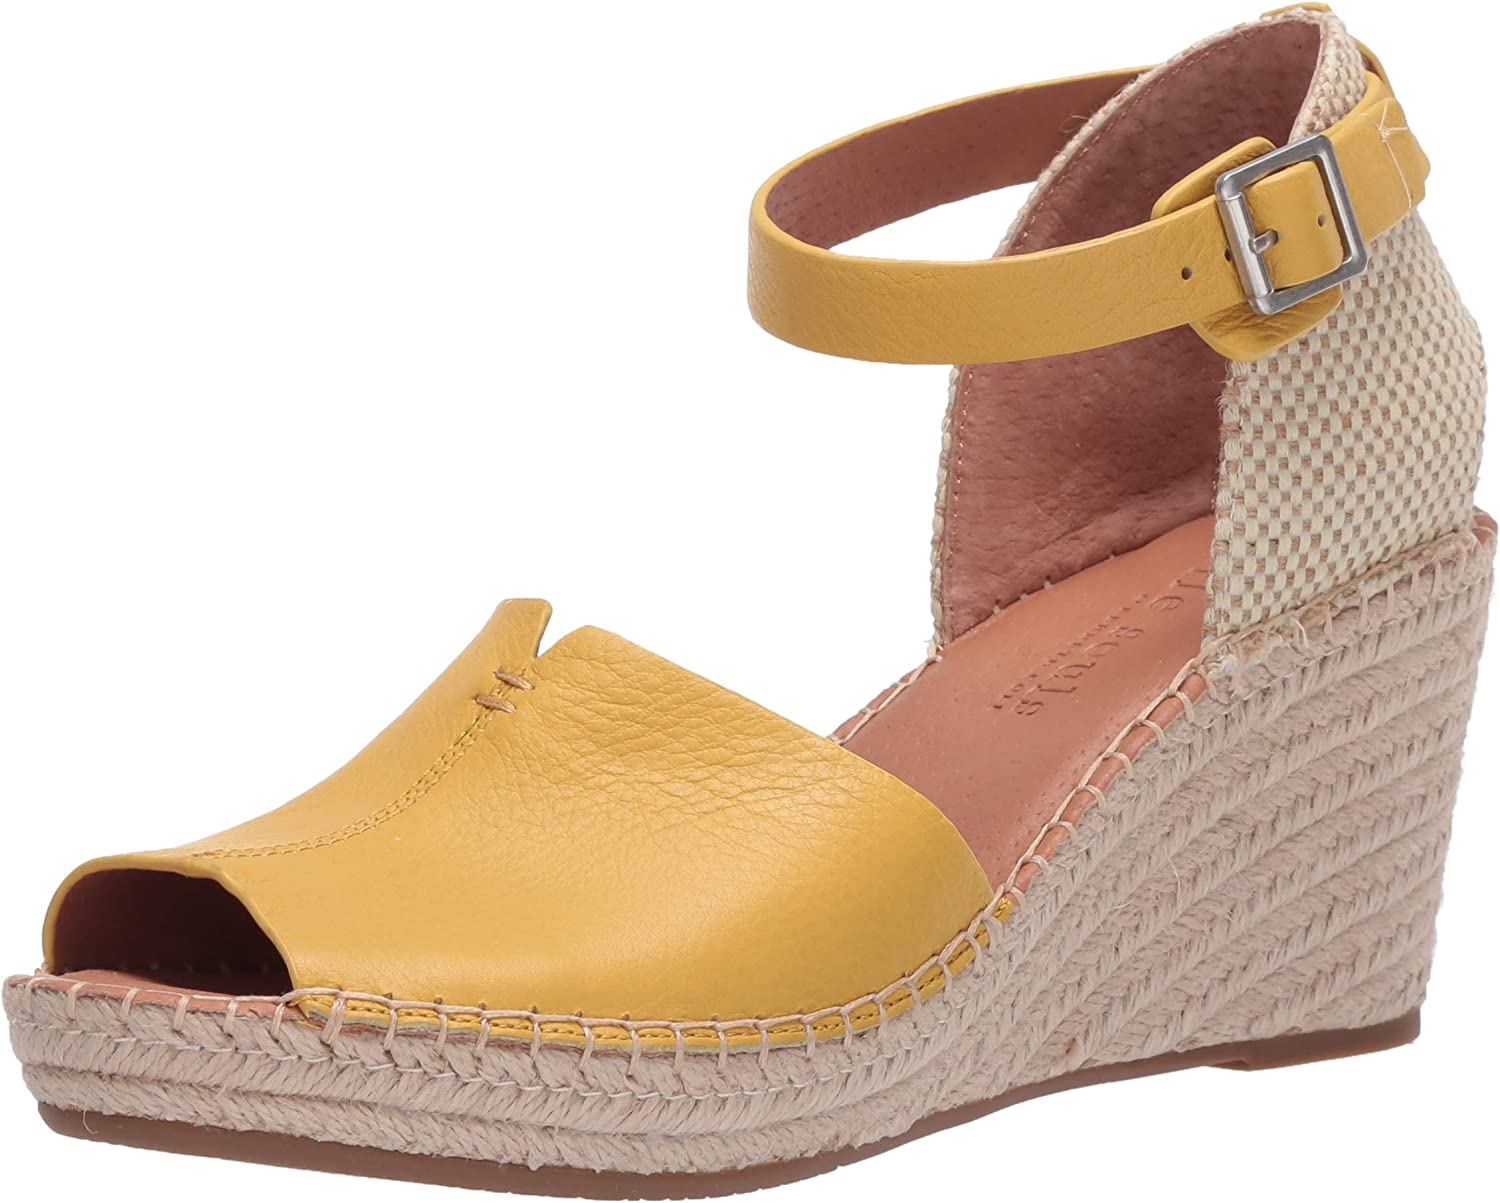 2021 spring and summer new Gentle Souls by Kenneth Cole Espadrille Wedge Charli Ranking TOP4 Women's San